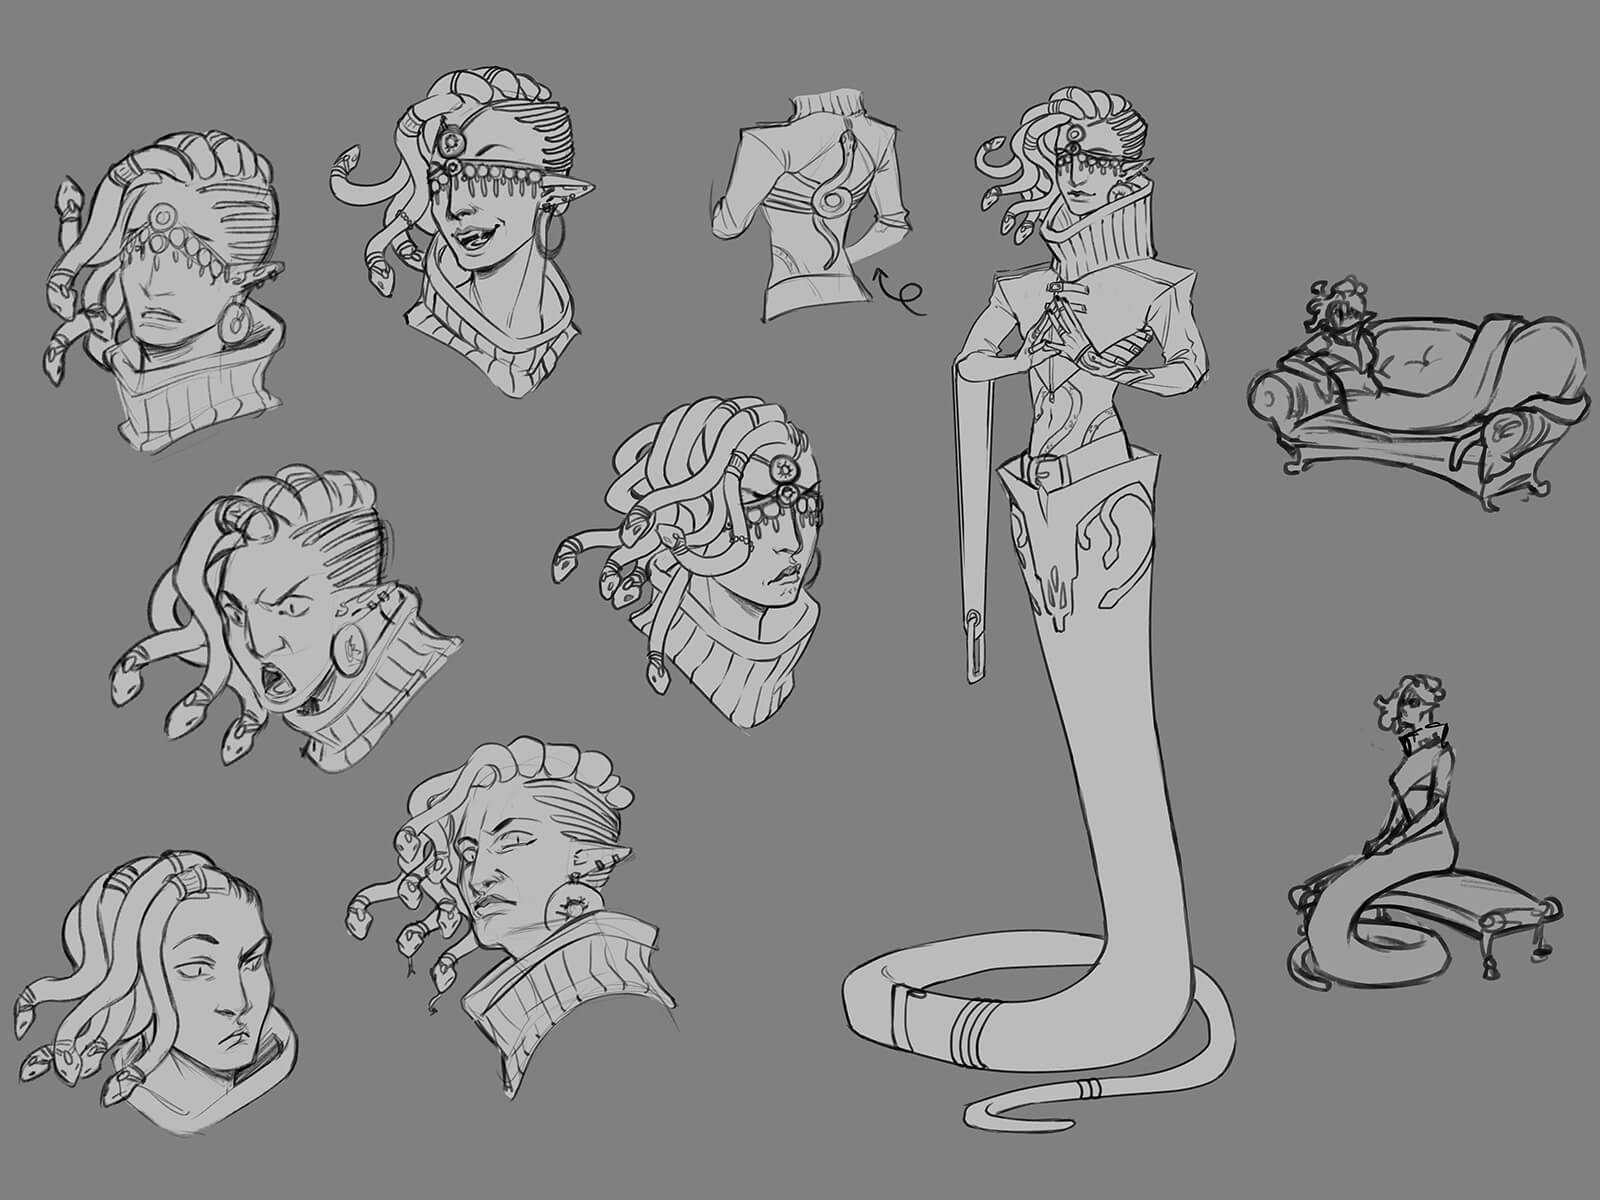 A character that is half-woman, half-snake, with snakes for hair